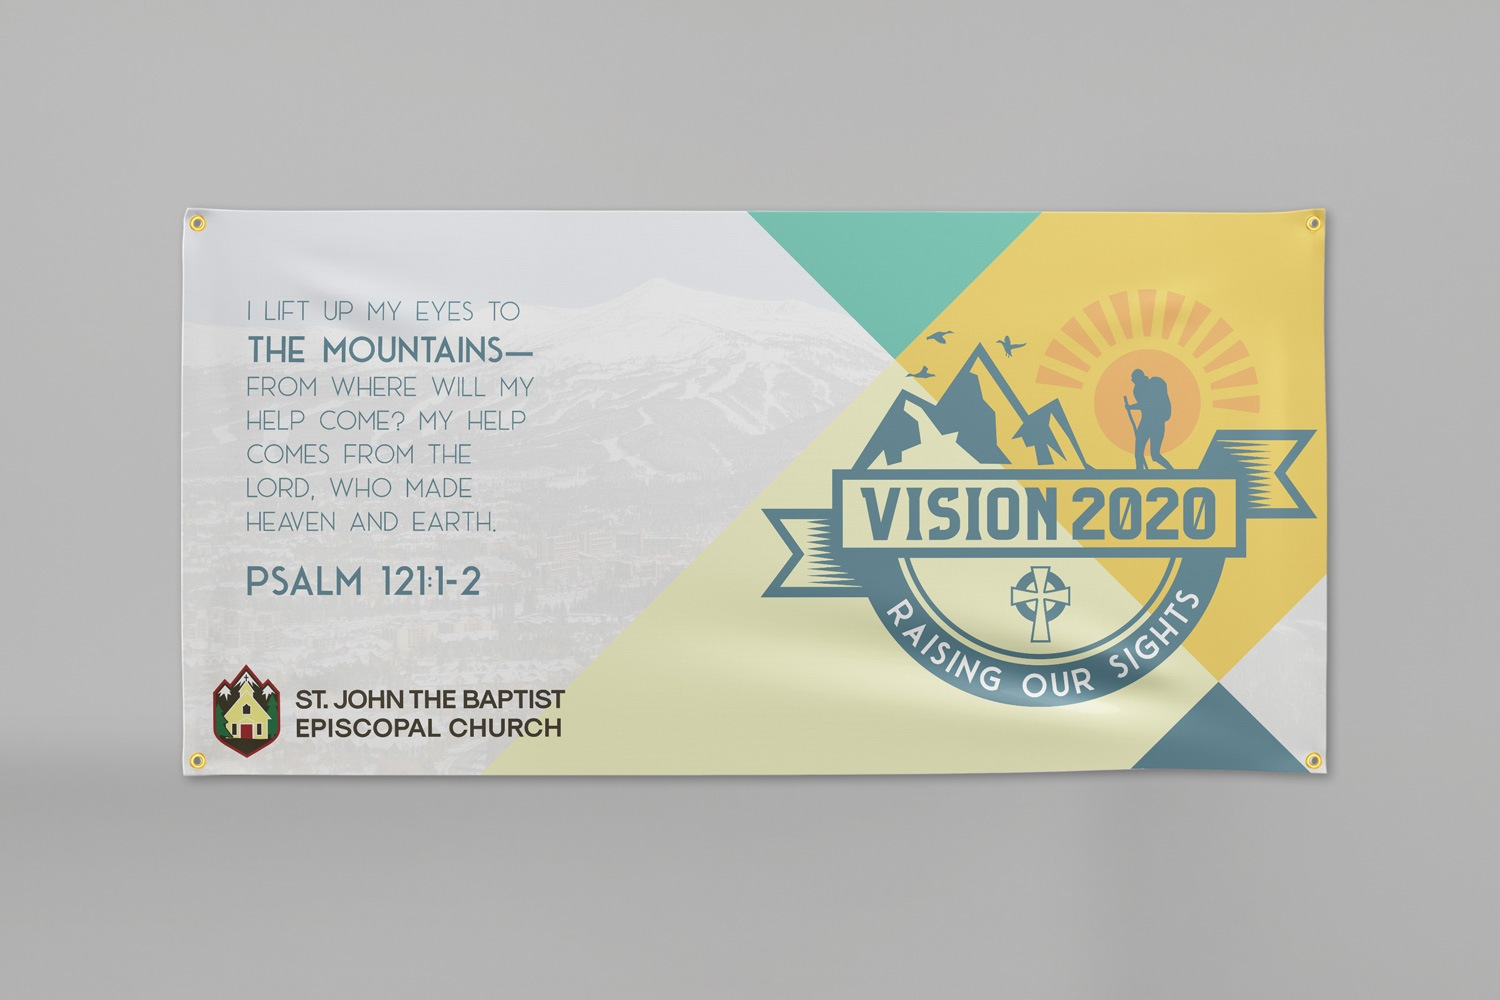 3 x 6 ft. custom church banner for church capital campaigns by Abstract Union in Lincoln, NE